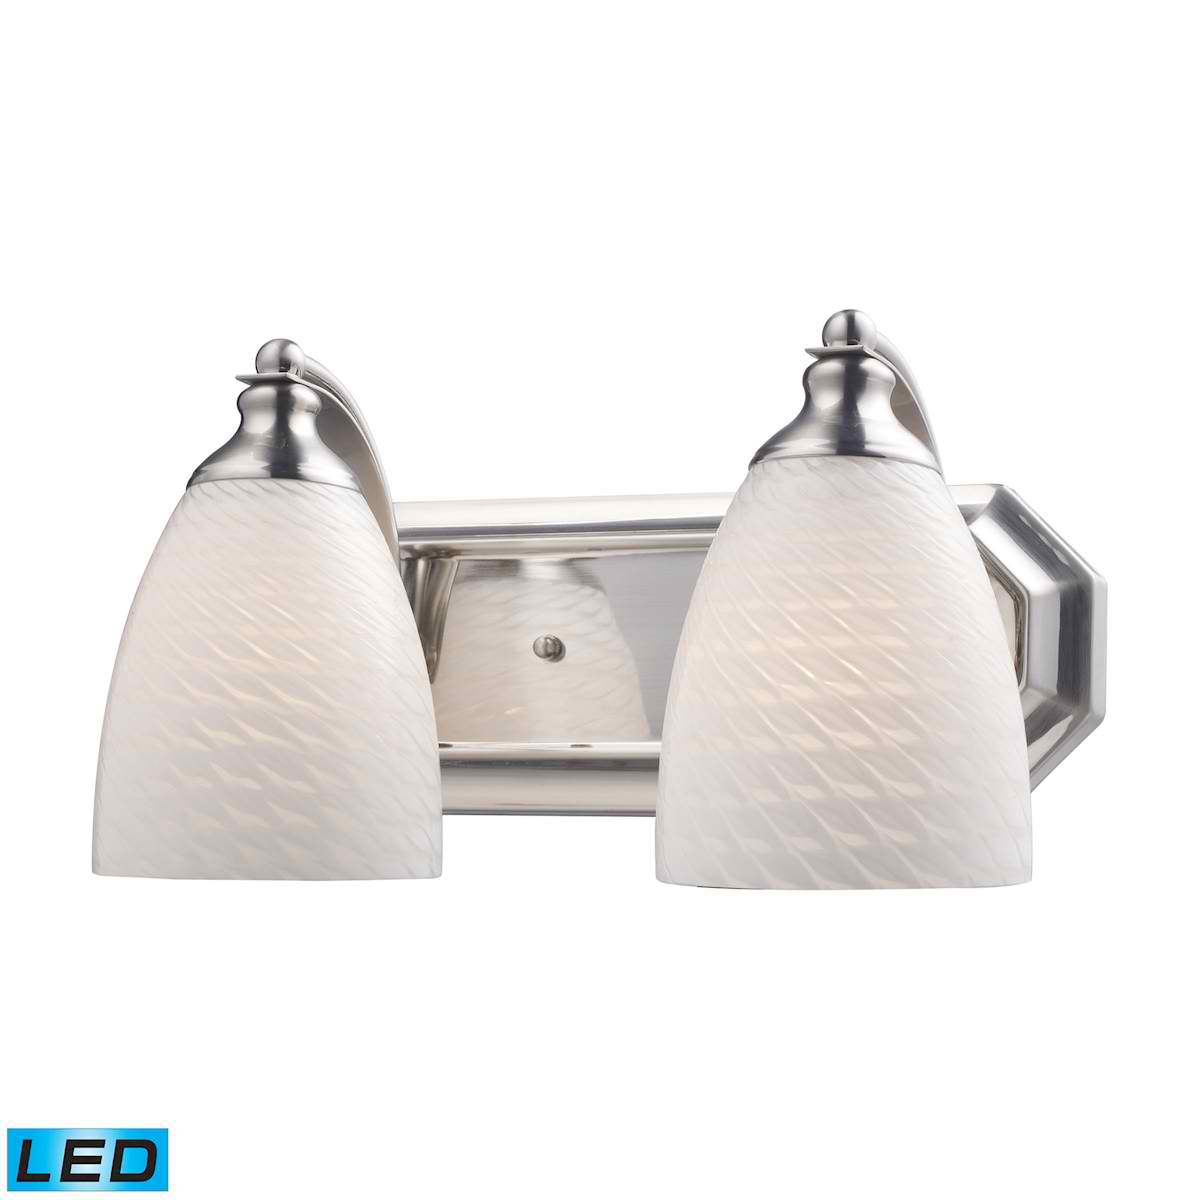 2 Light Vanity in Satin Nickel and White Swirl Glass - LED, 800 Lumens (1600 Lumens Total) with Full Scale